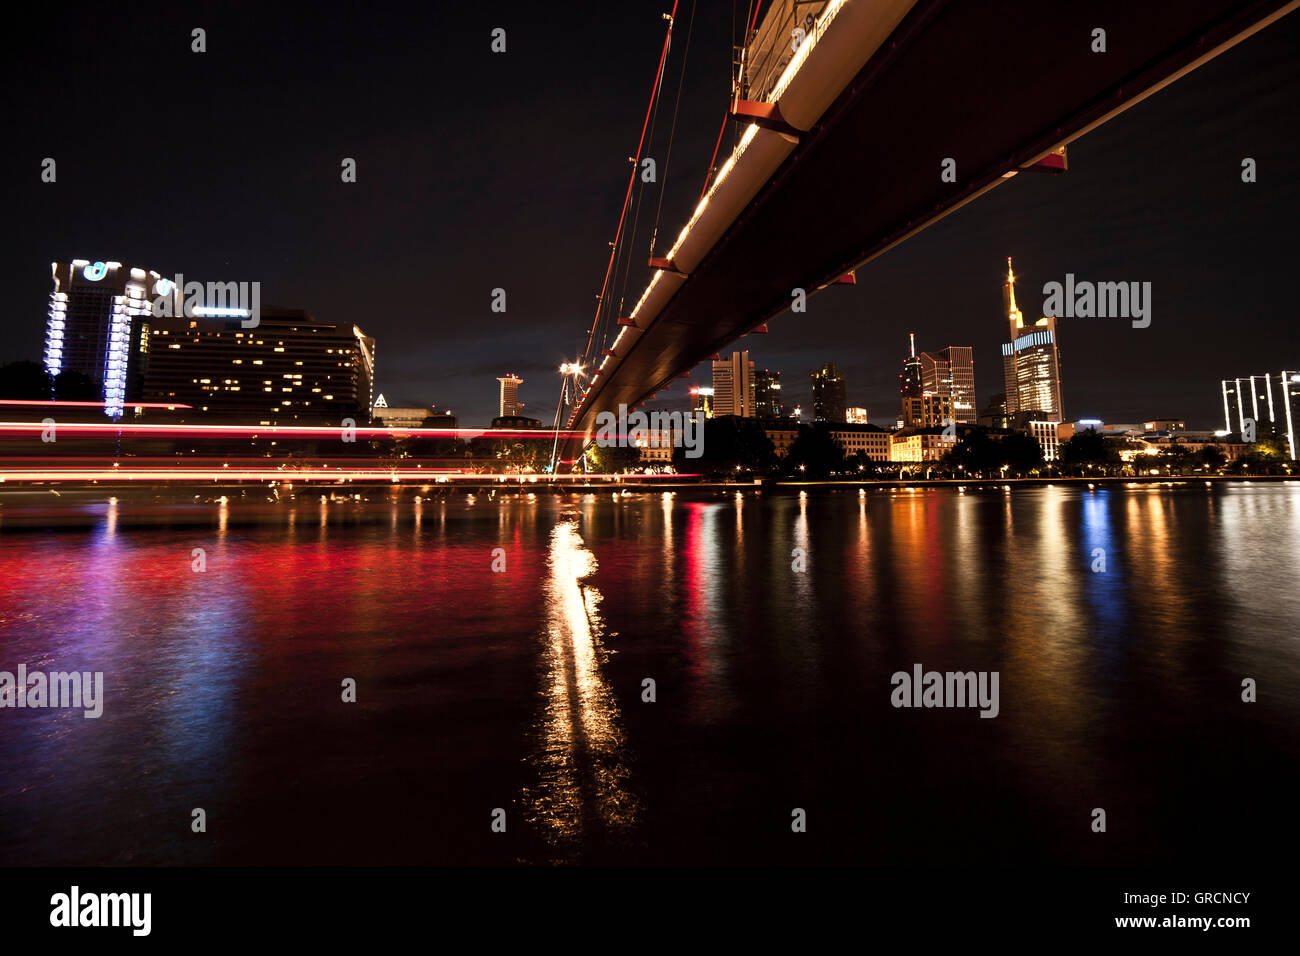 Holbeinbridge In Frankfurt, Shot From Below At Night With Skyline And Moving Lights - Stock Image